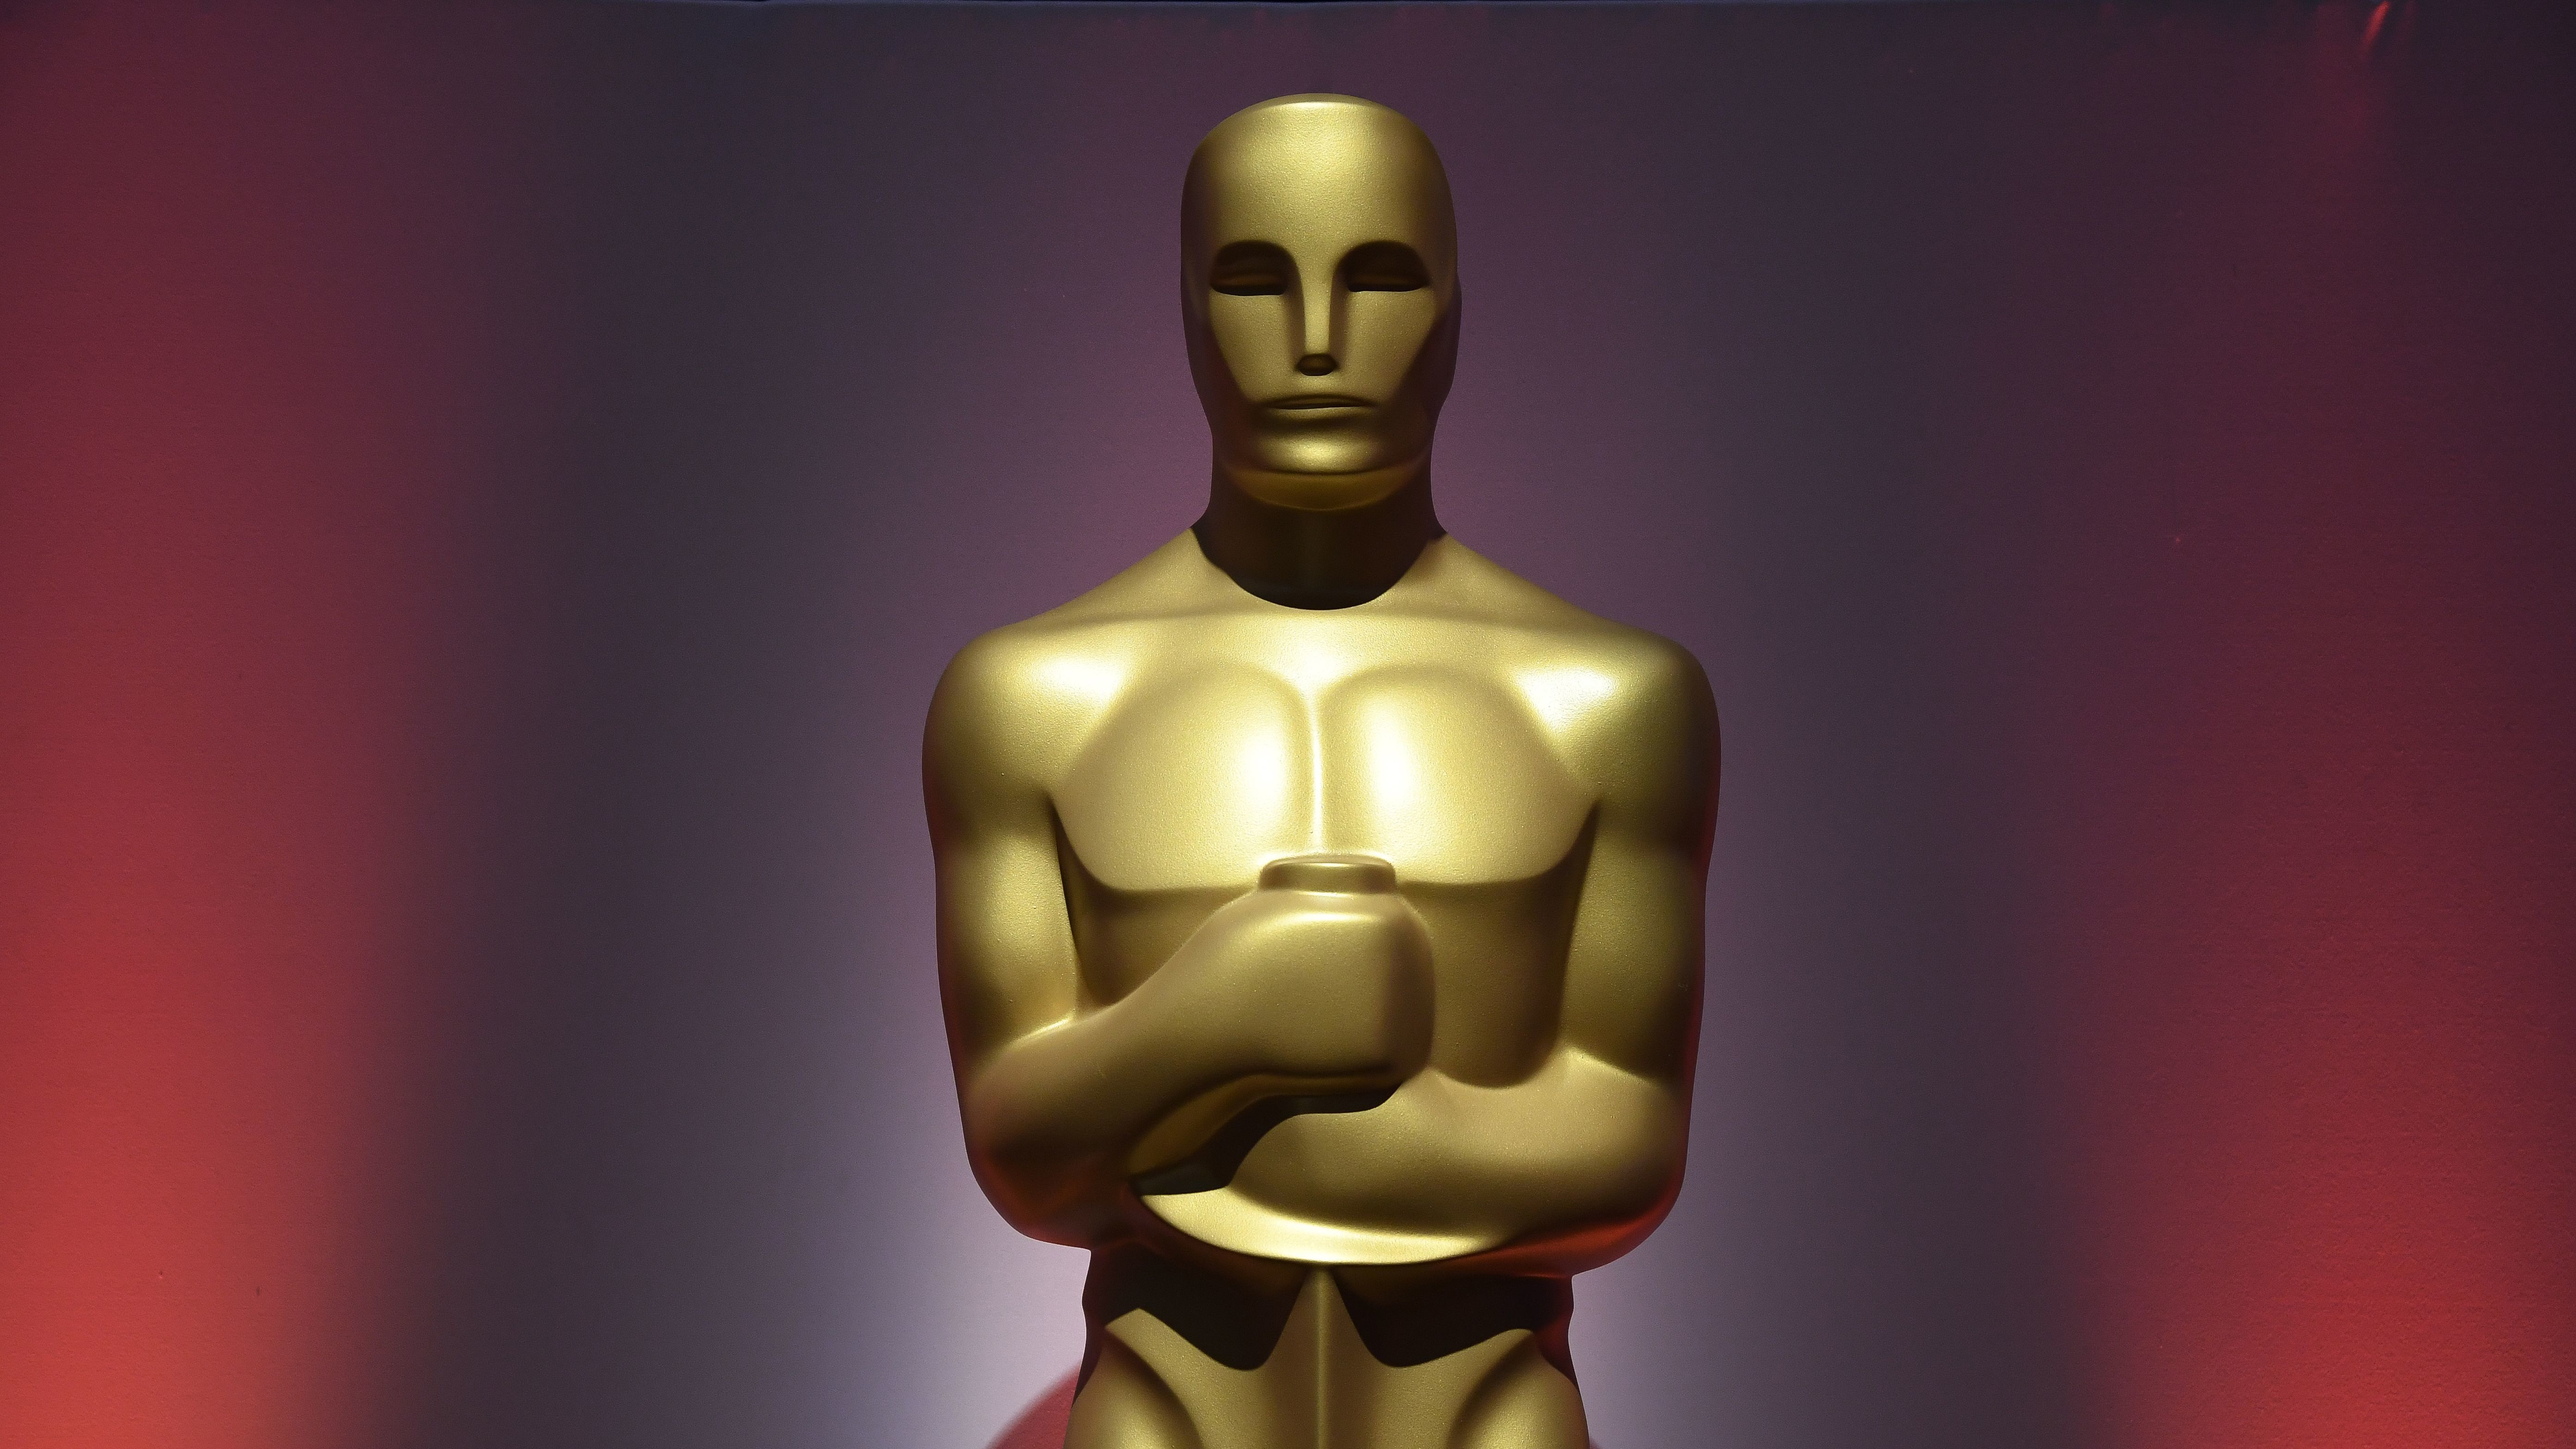 The Oscar telecast on ABC has been moved to April 25 because of the coronavirus pandemic.